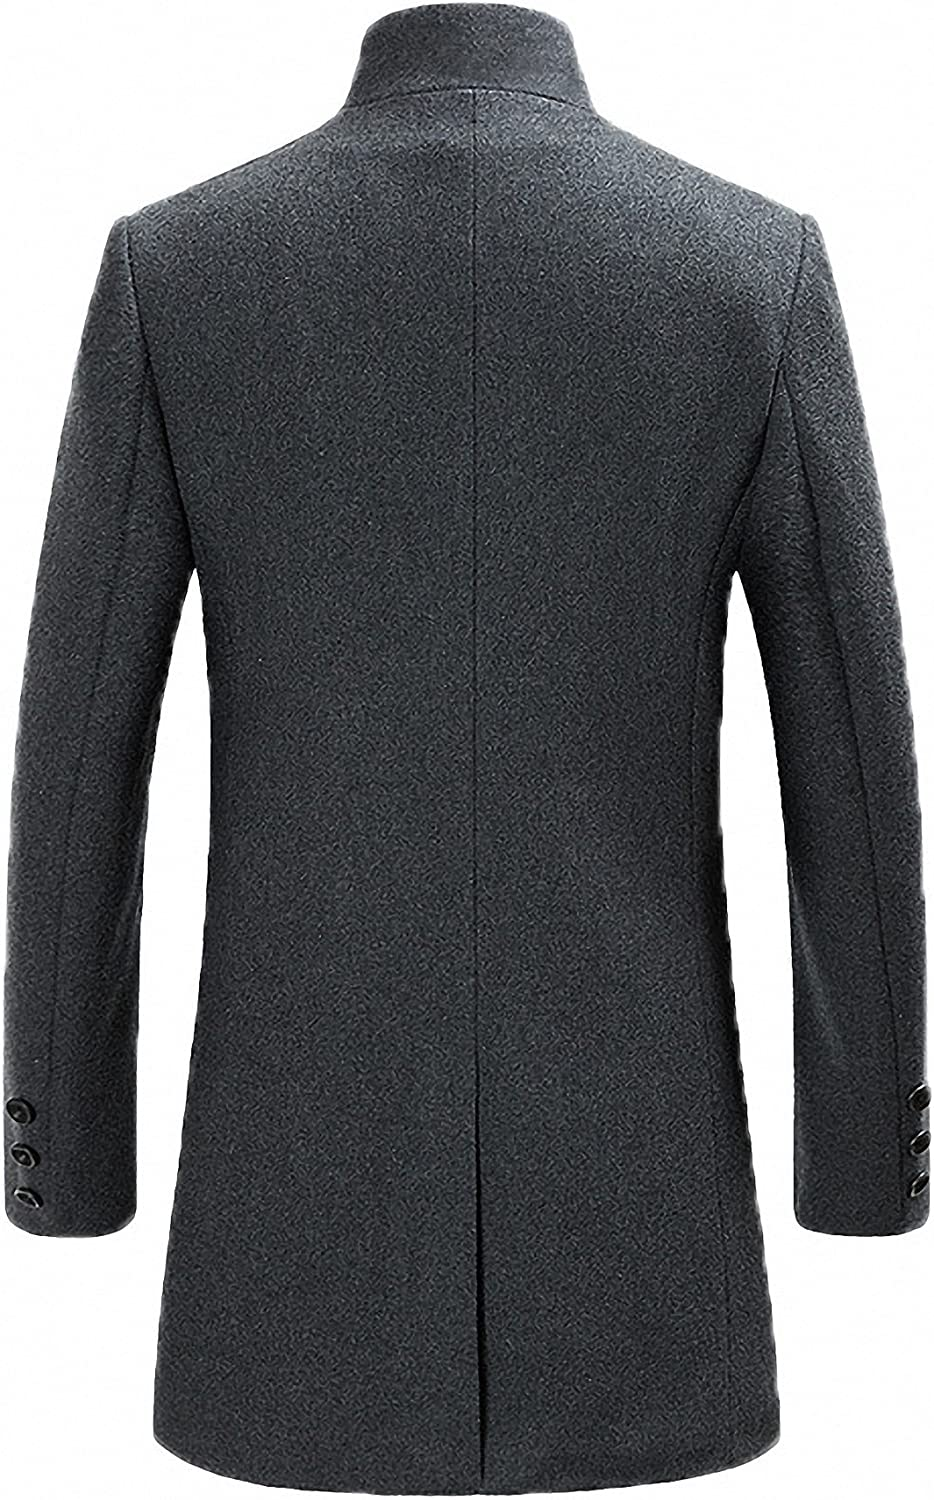 FASHINTY Mens Classical France Style Stand Collar Wool Jacket #00001W